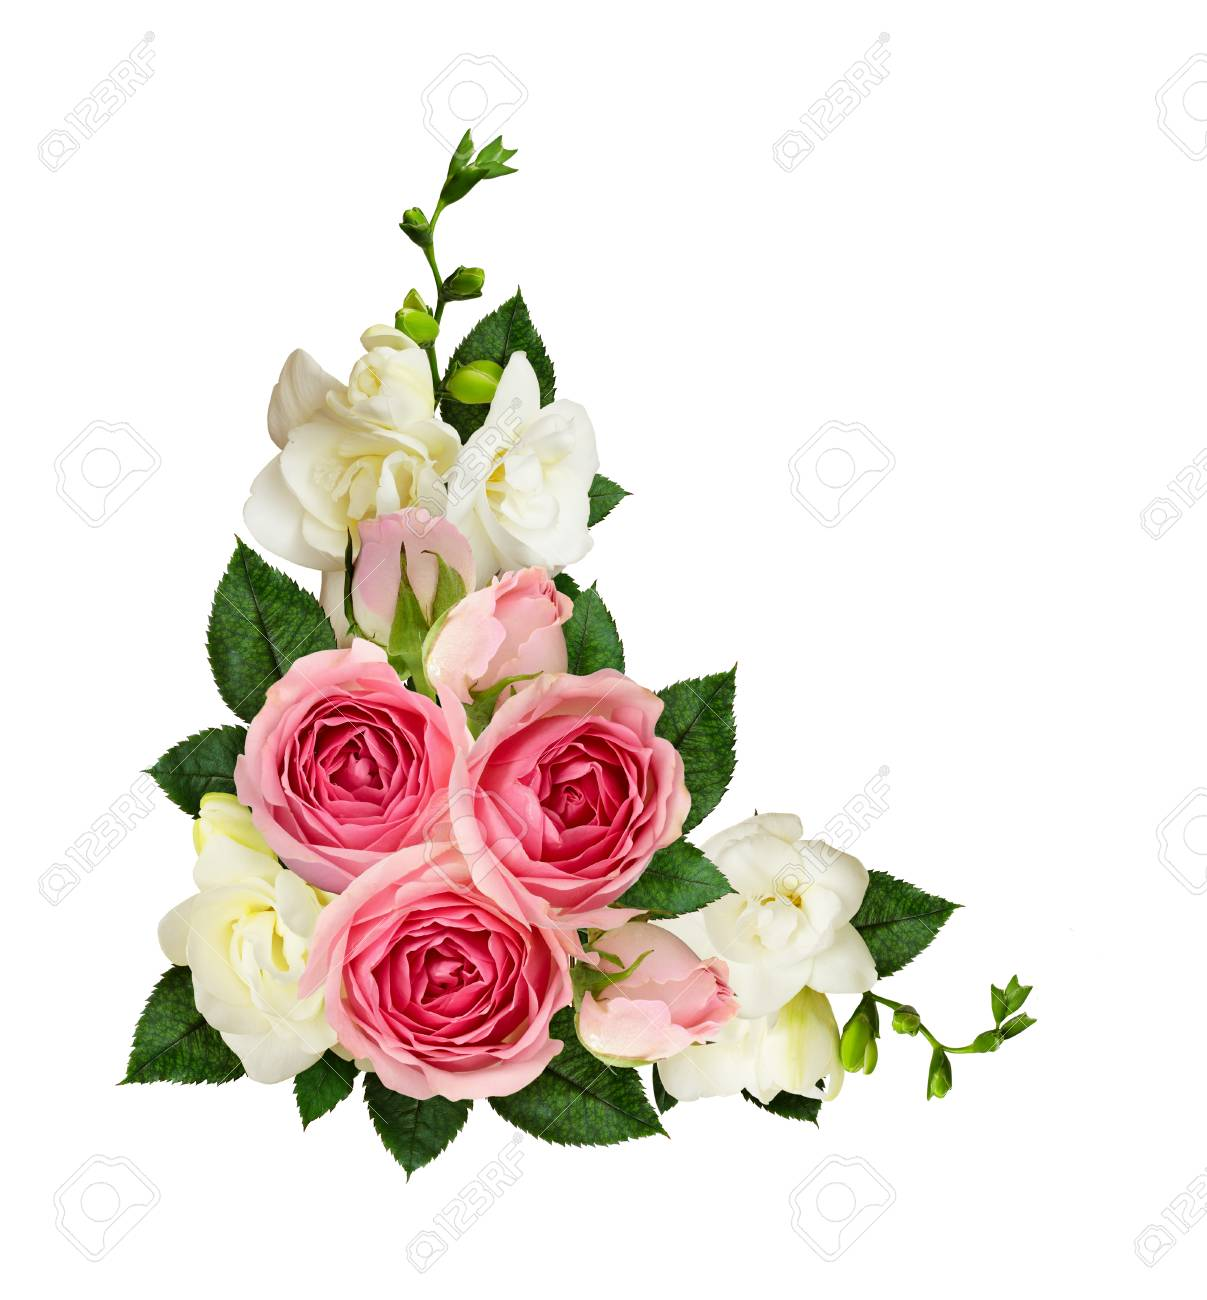 Pink roses and freesia flowers and buds in a corner arrangement pink roses and freesia flowers and buds in a corner arrangement isolated on white background mightylinksfo